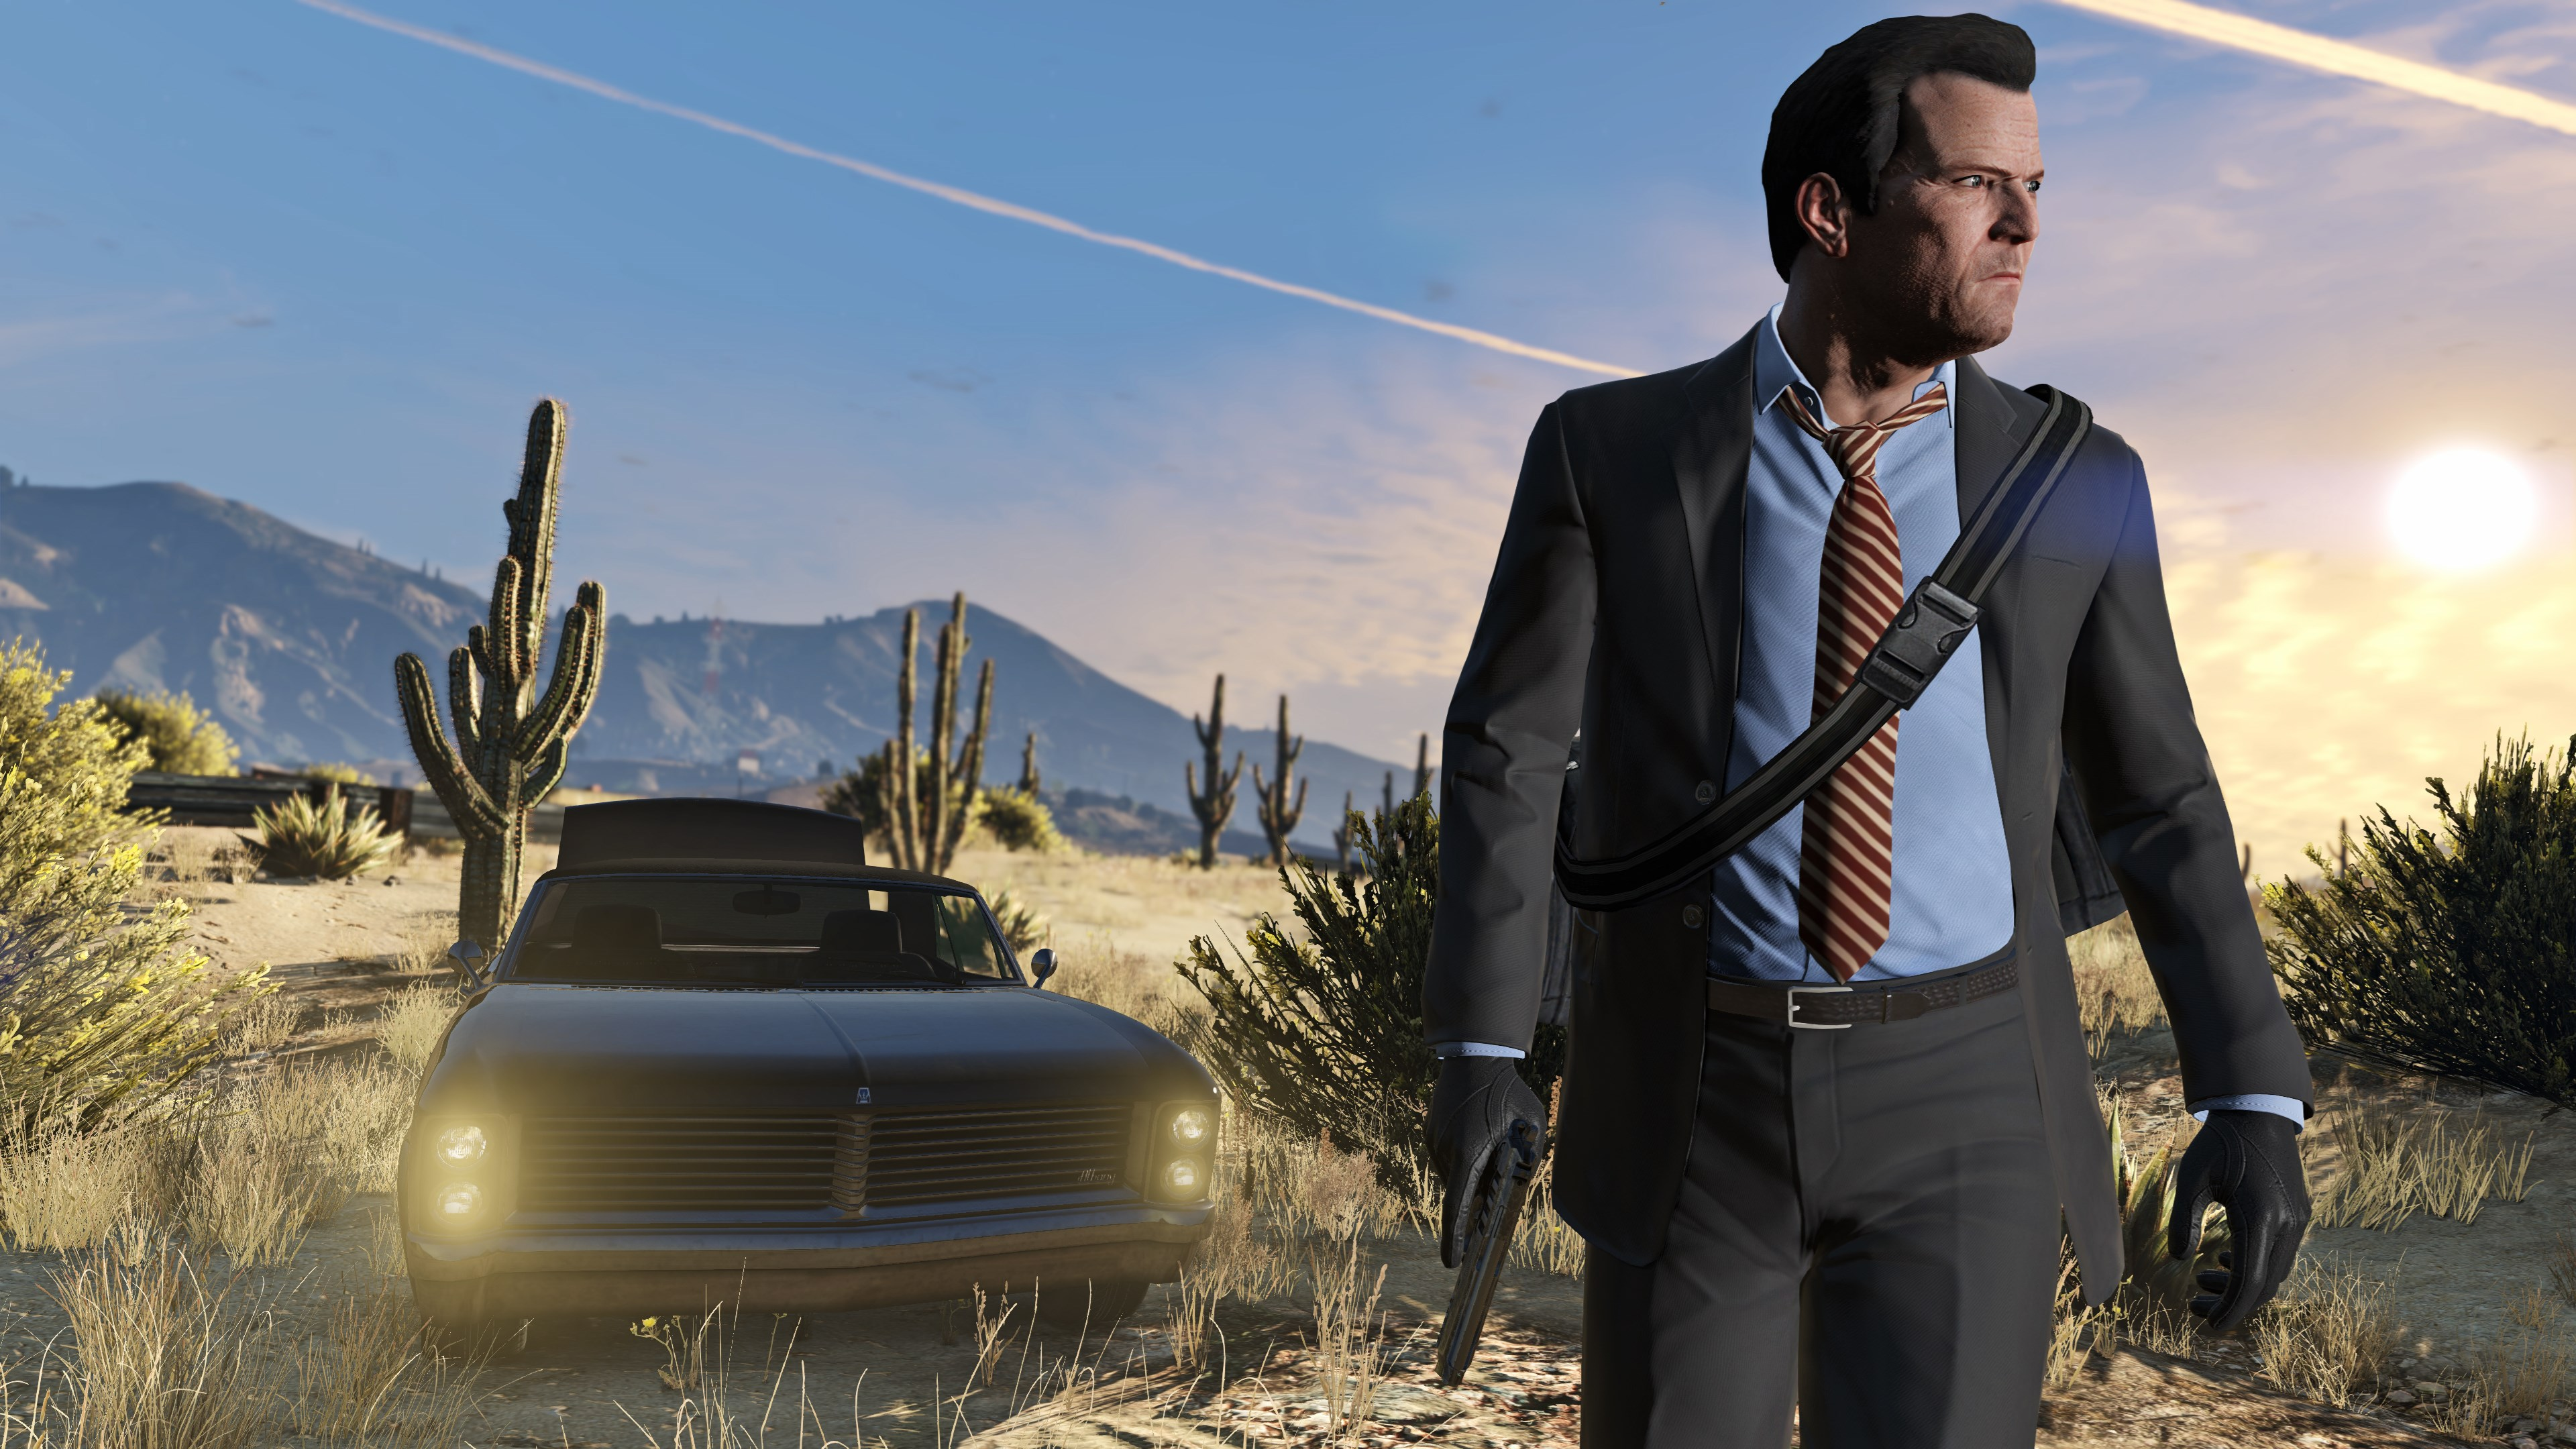 Michael In Gta V Hd Games 4k Wallpapers Images